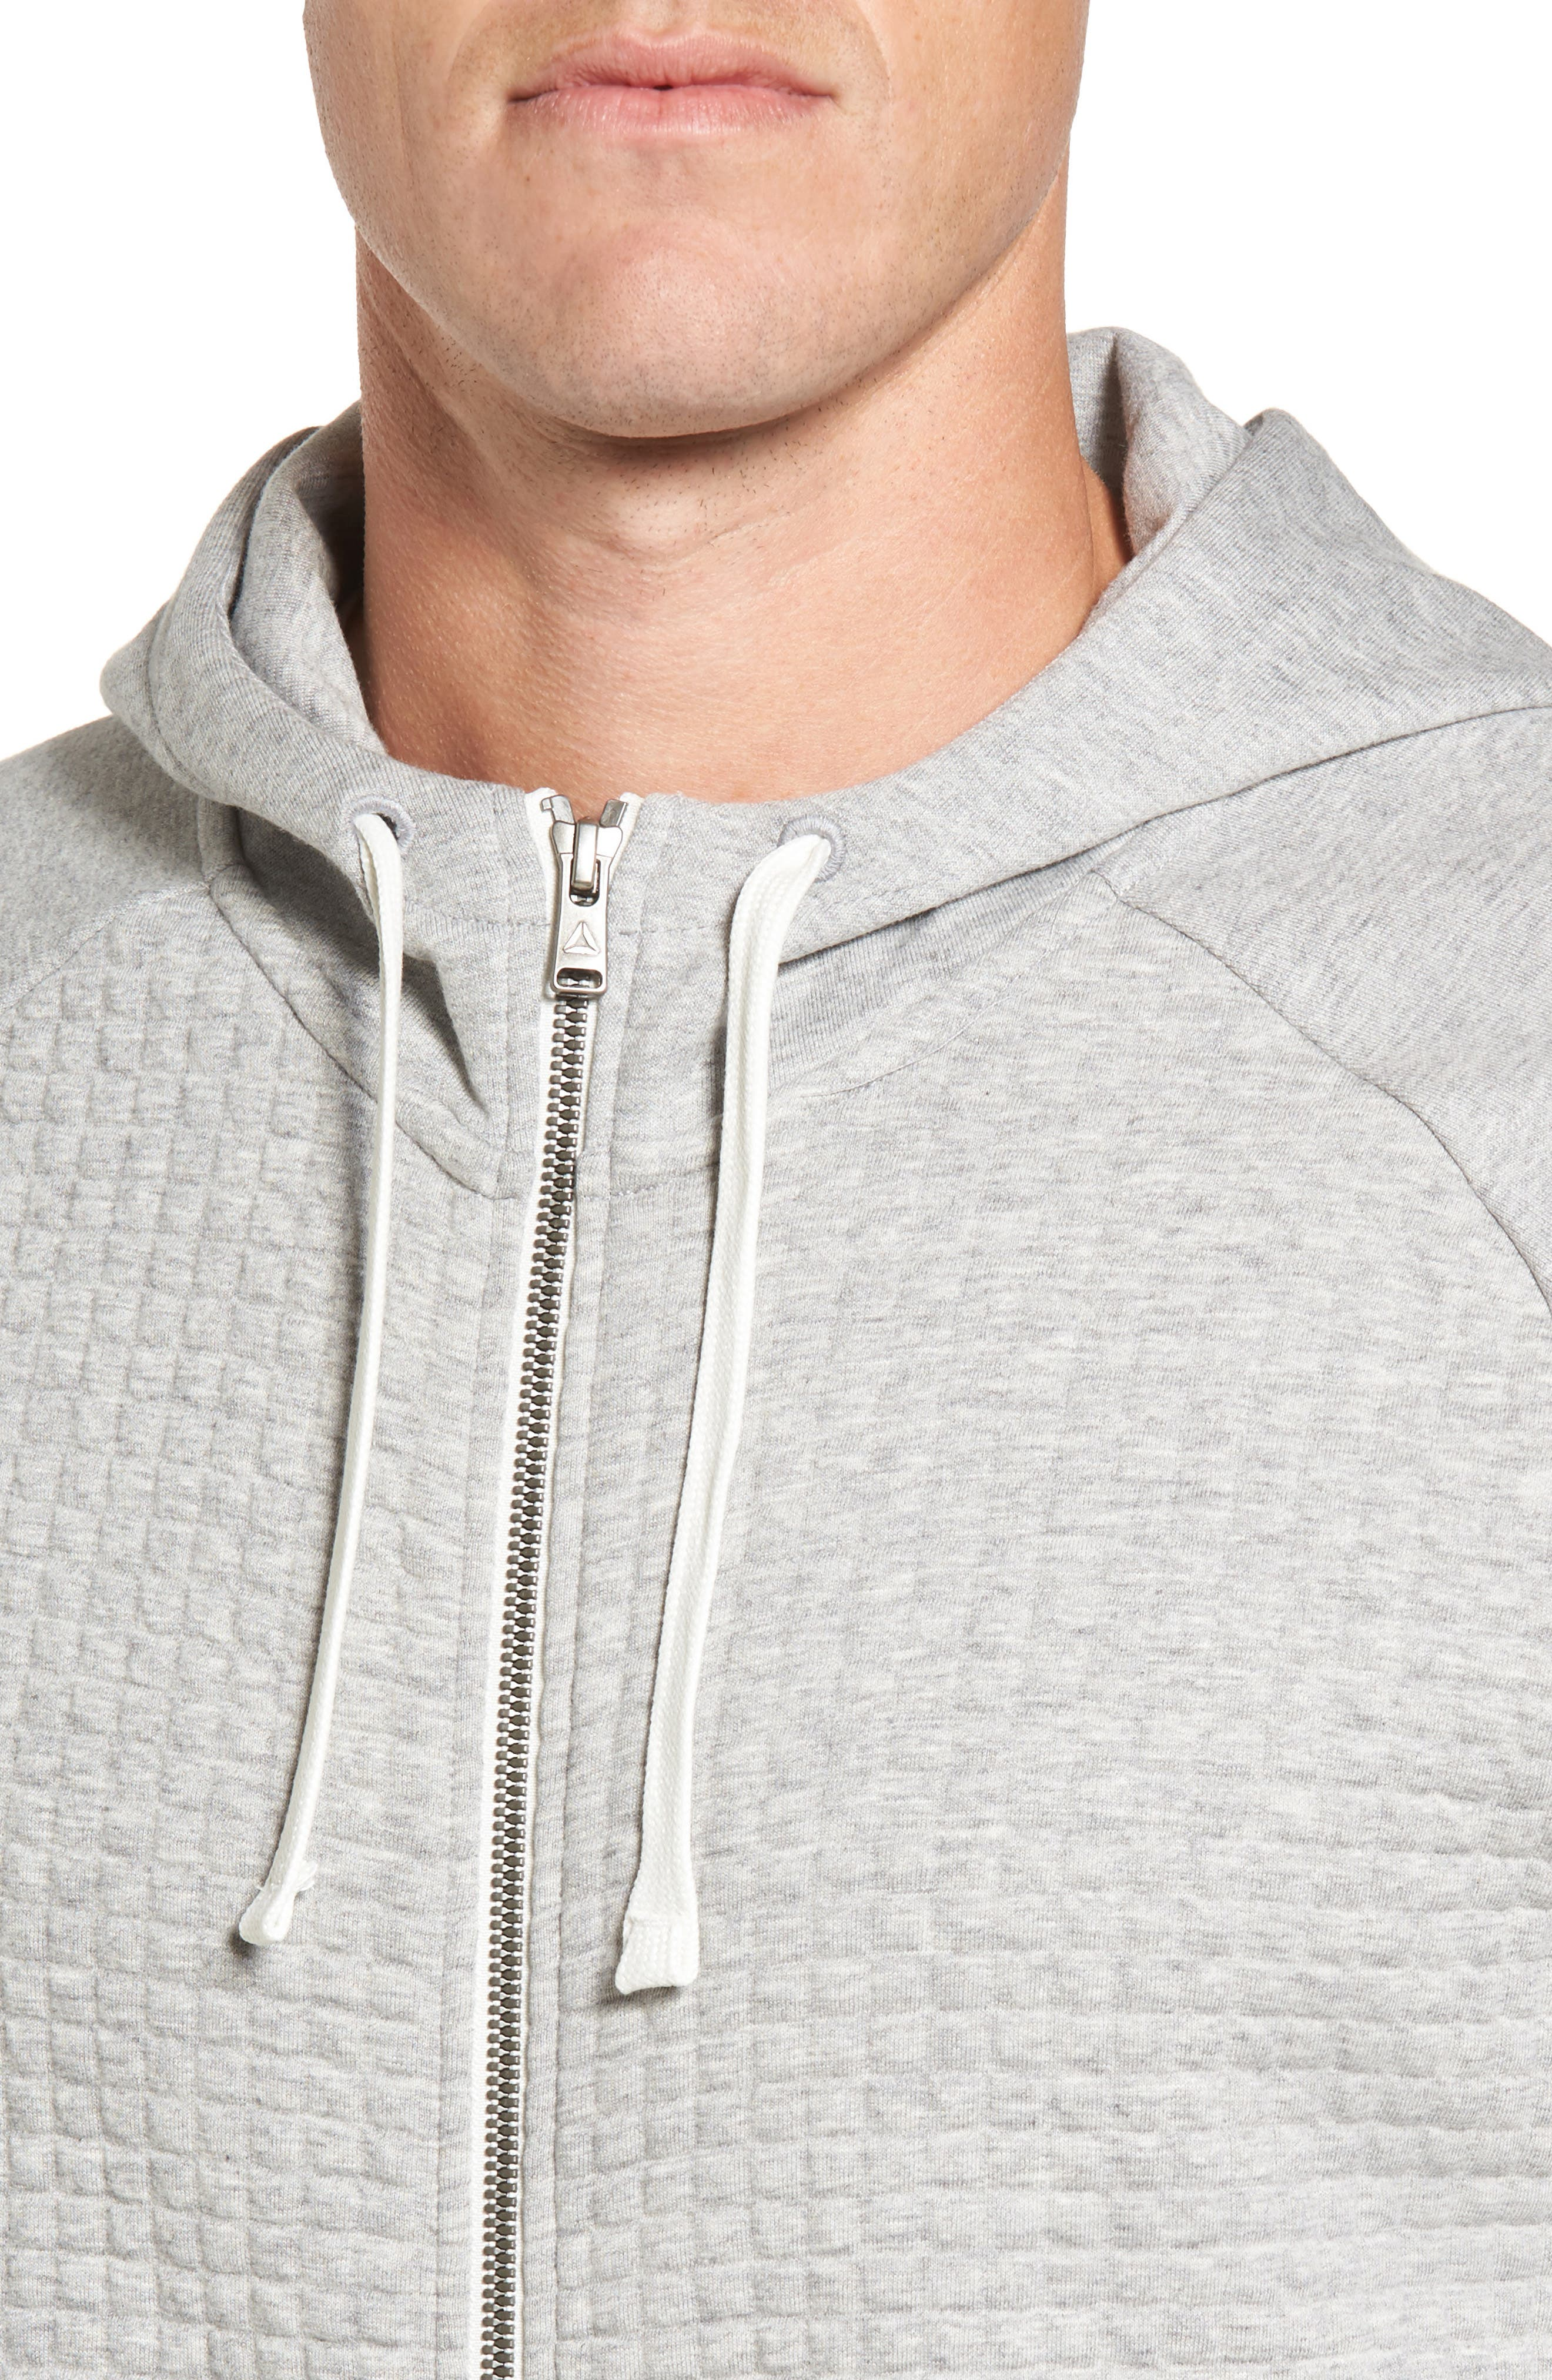 Classic Quilted Zip Hoodie,                             Alternate thumbnail 4, color,                             Medium Grey Heather